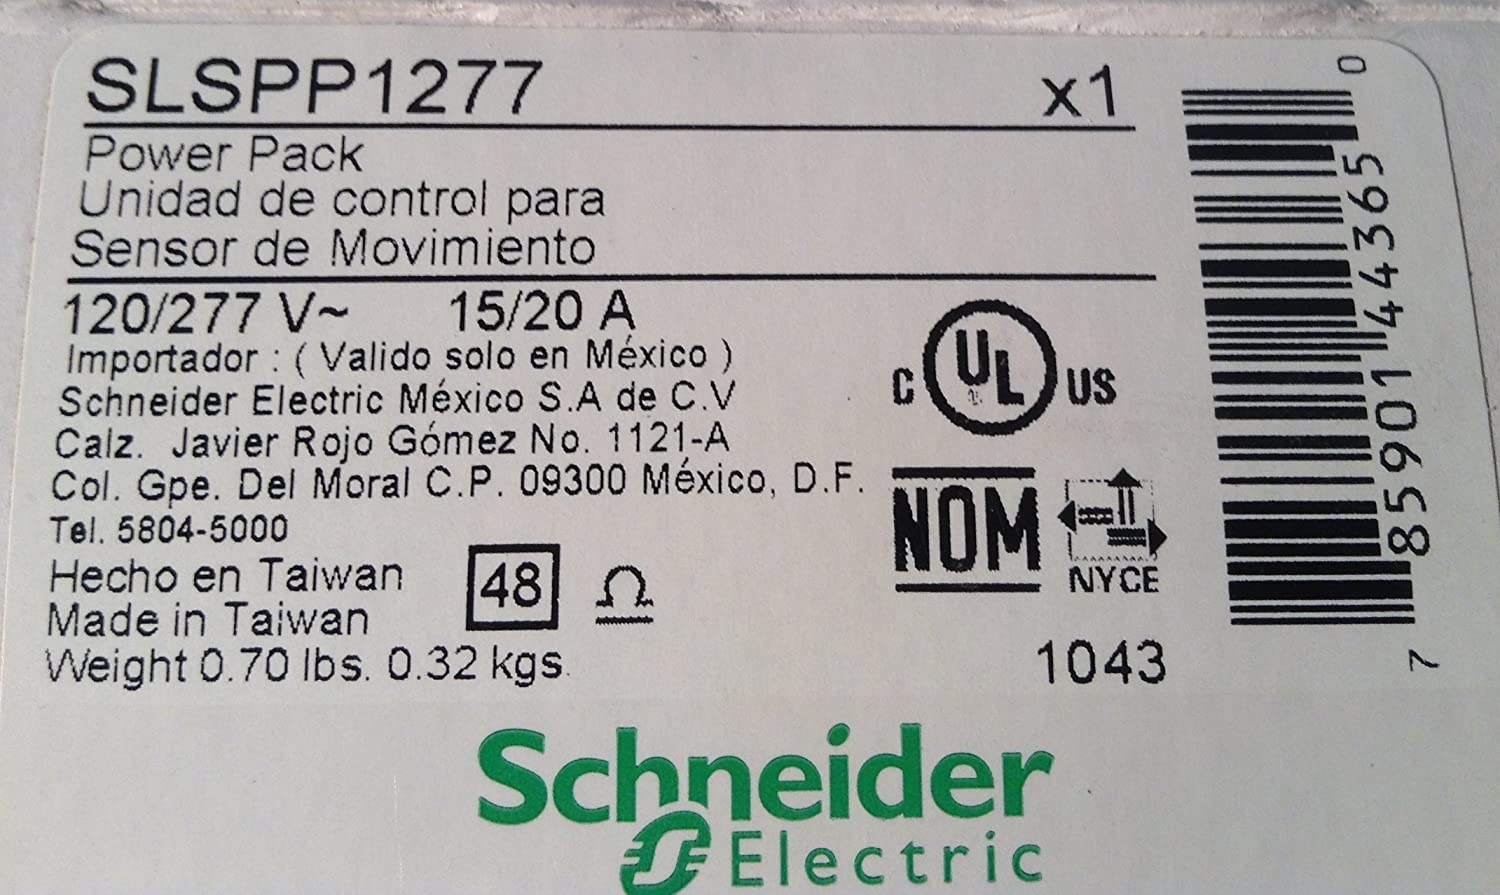 1- SQUARE D BY SCHNEIDER ELECTRIC SLSPP1277 POWER PACK - Electrical Equipment - Amazon.com